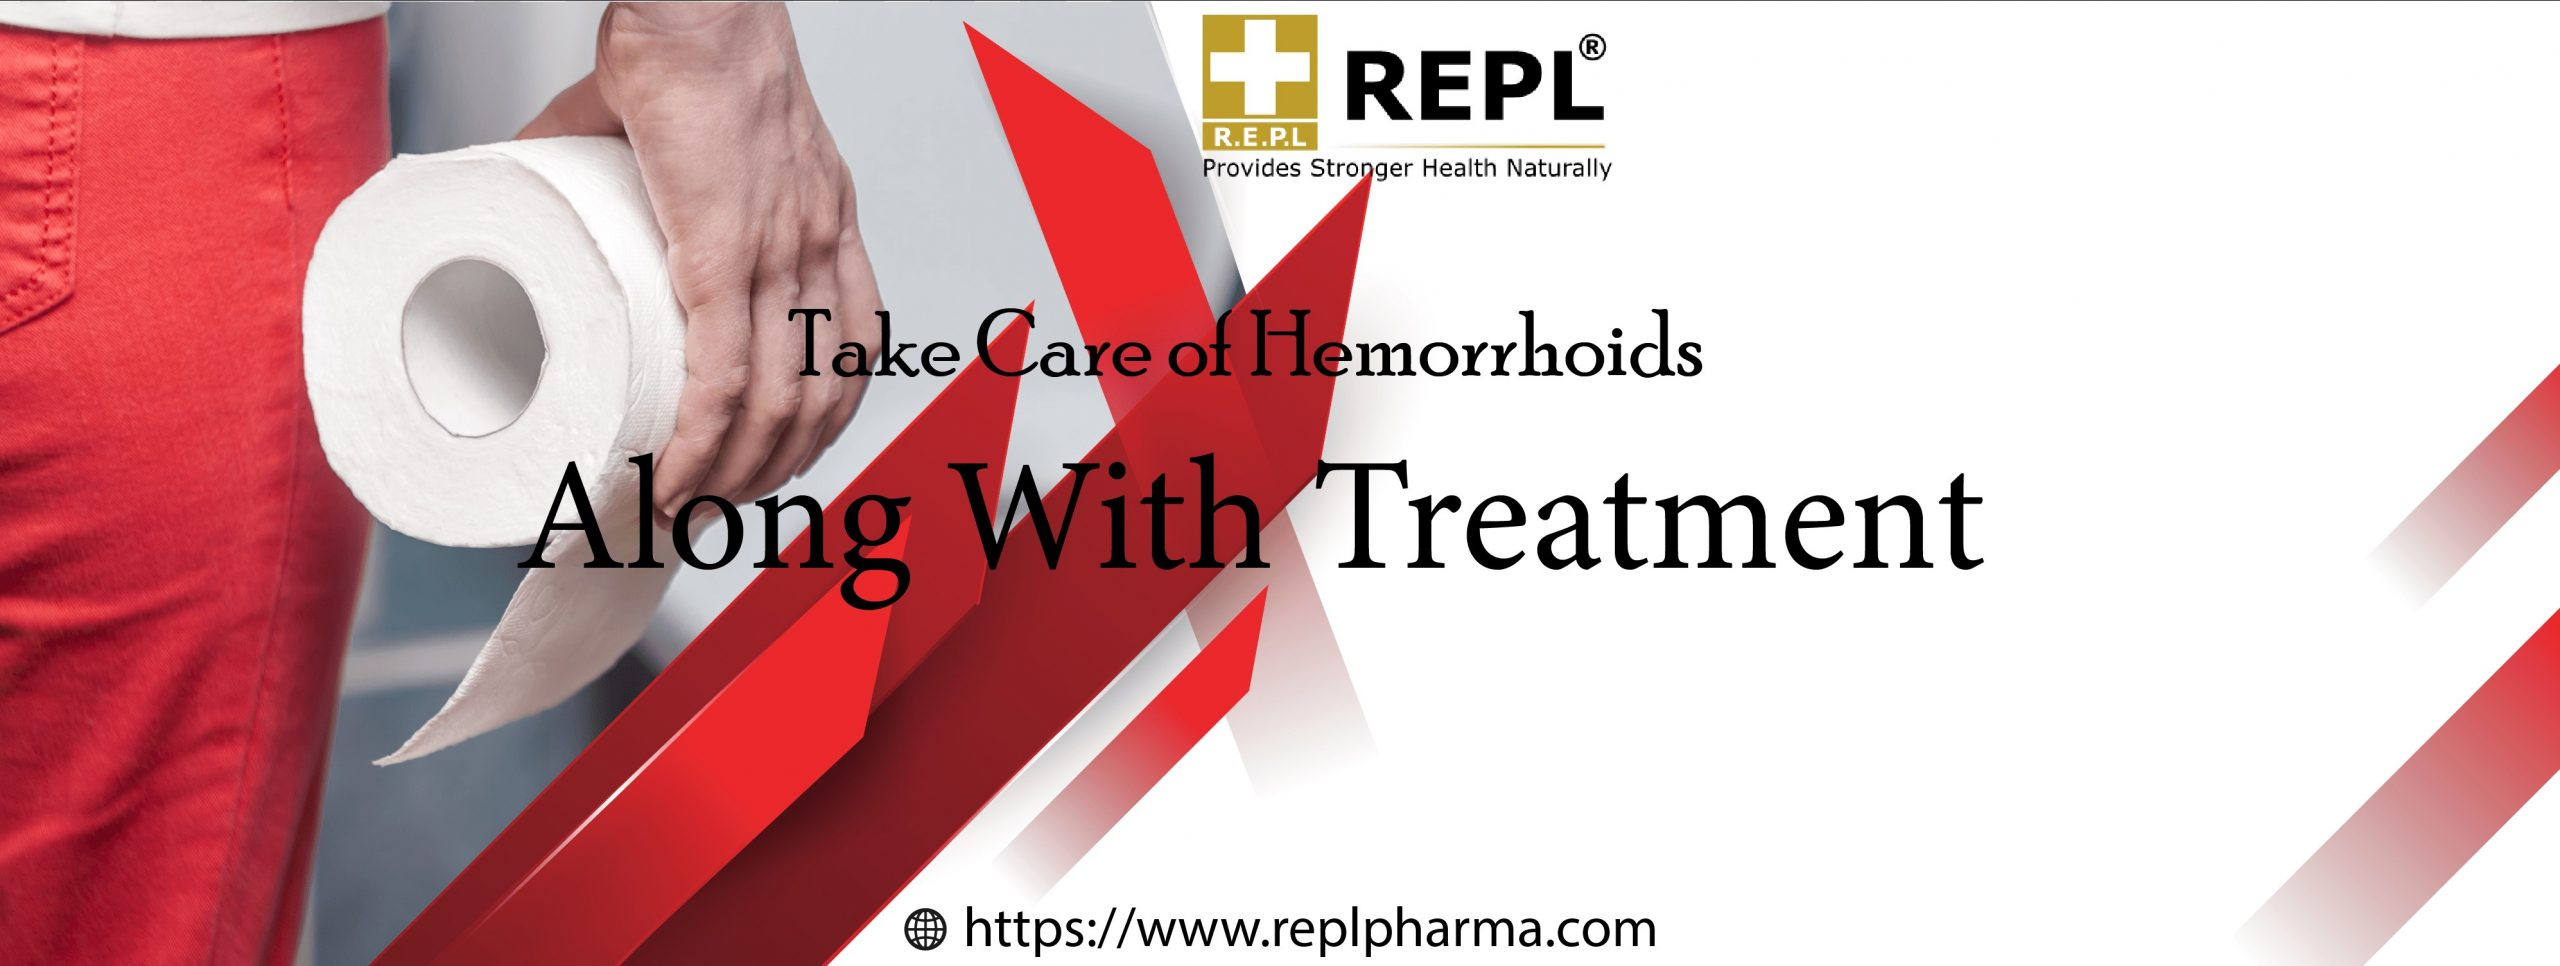 Take care of hemorrhoid